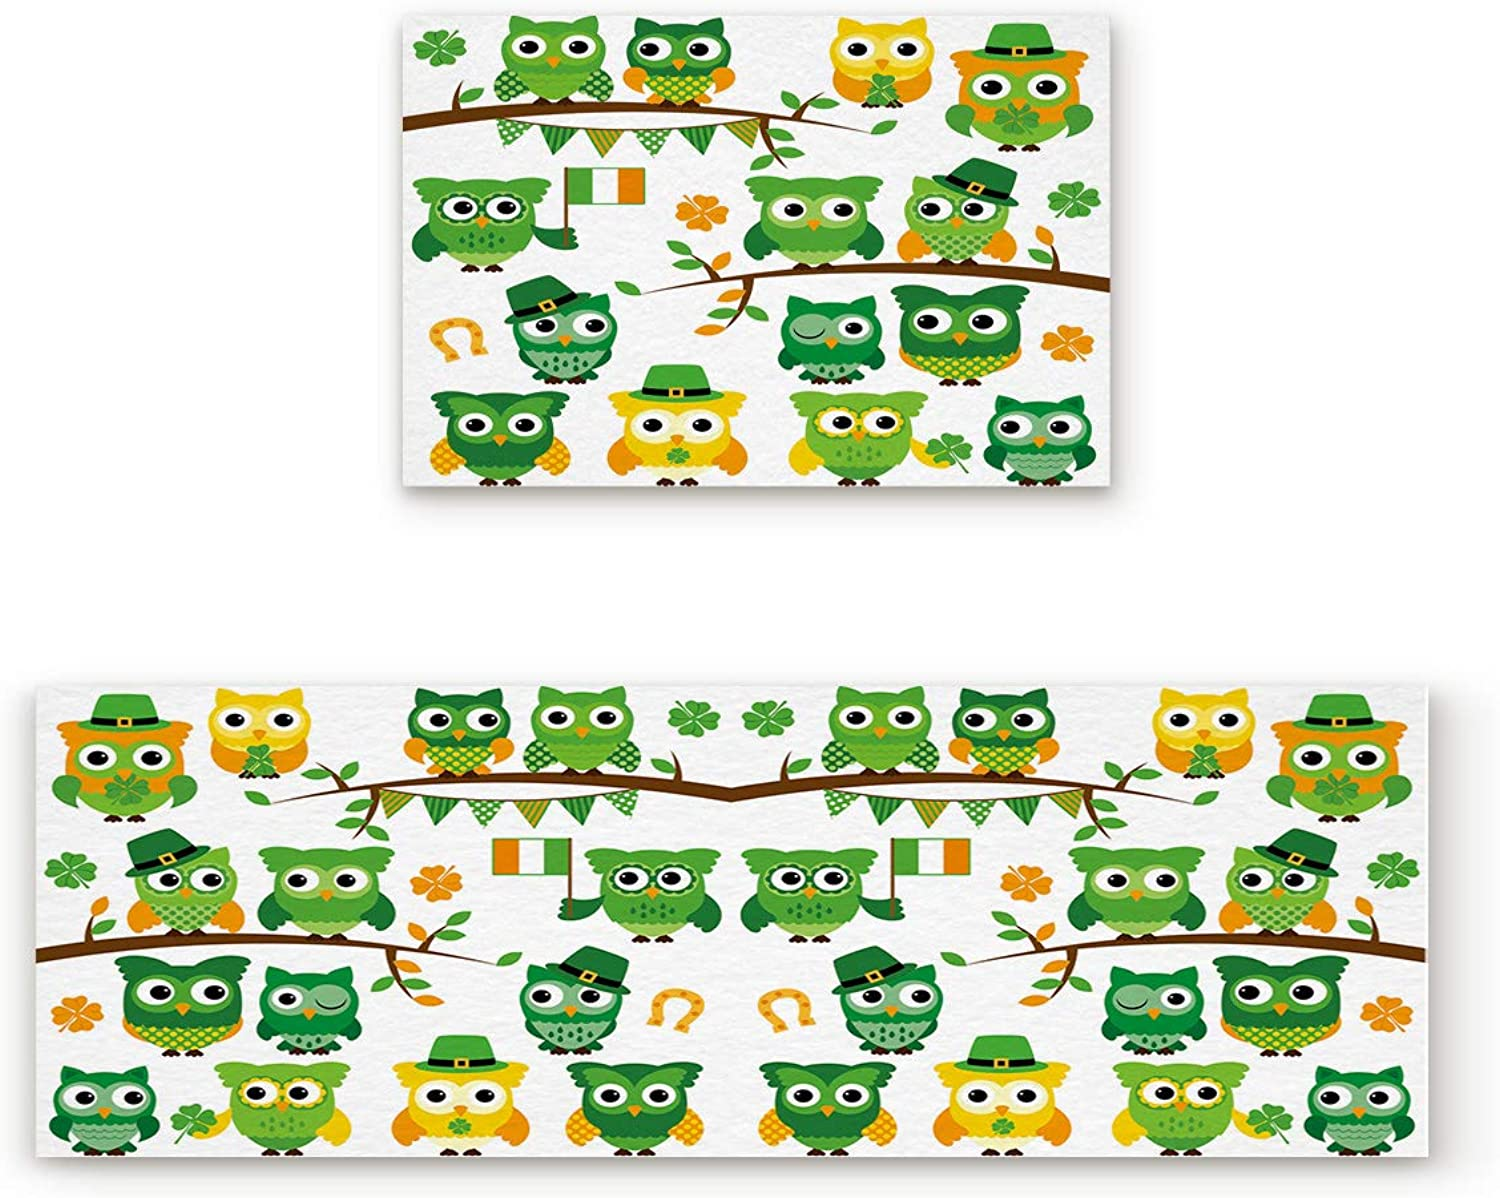 Findamy Non-Slip Indoor Door Mat Entrance Rug Rectangle Absorbent Moisture Floor Carpet for St. Patrick's Day Irish Owls with Leprechaun Hats on Trees Doormat 19.7x31.5In+19.7x63In